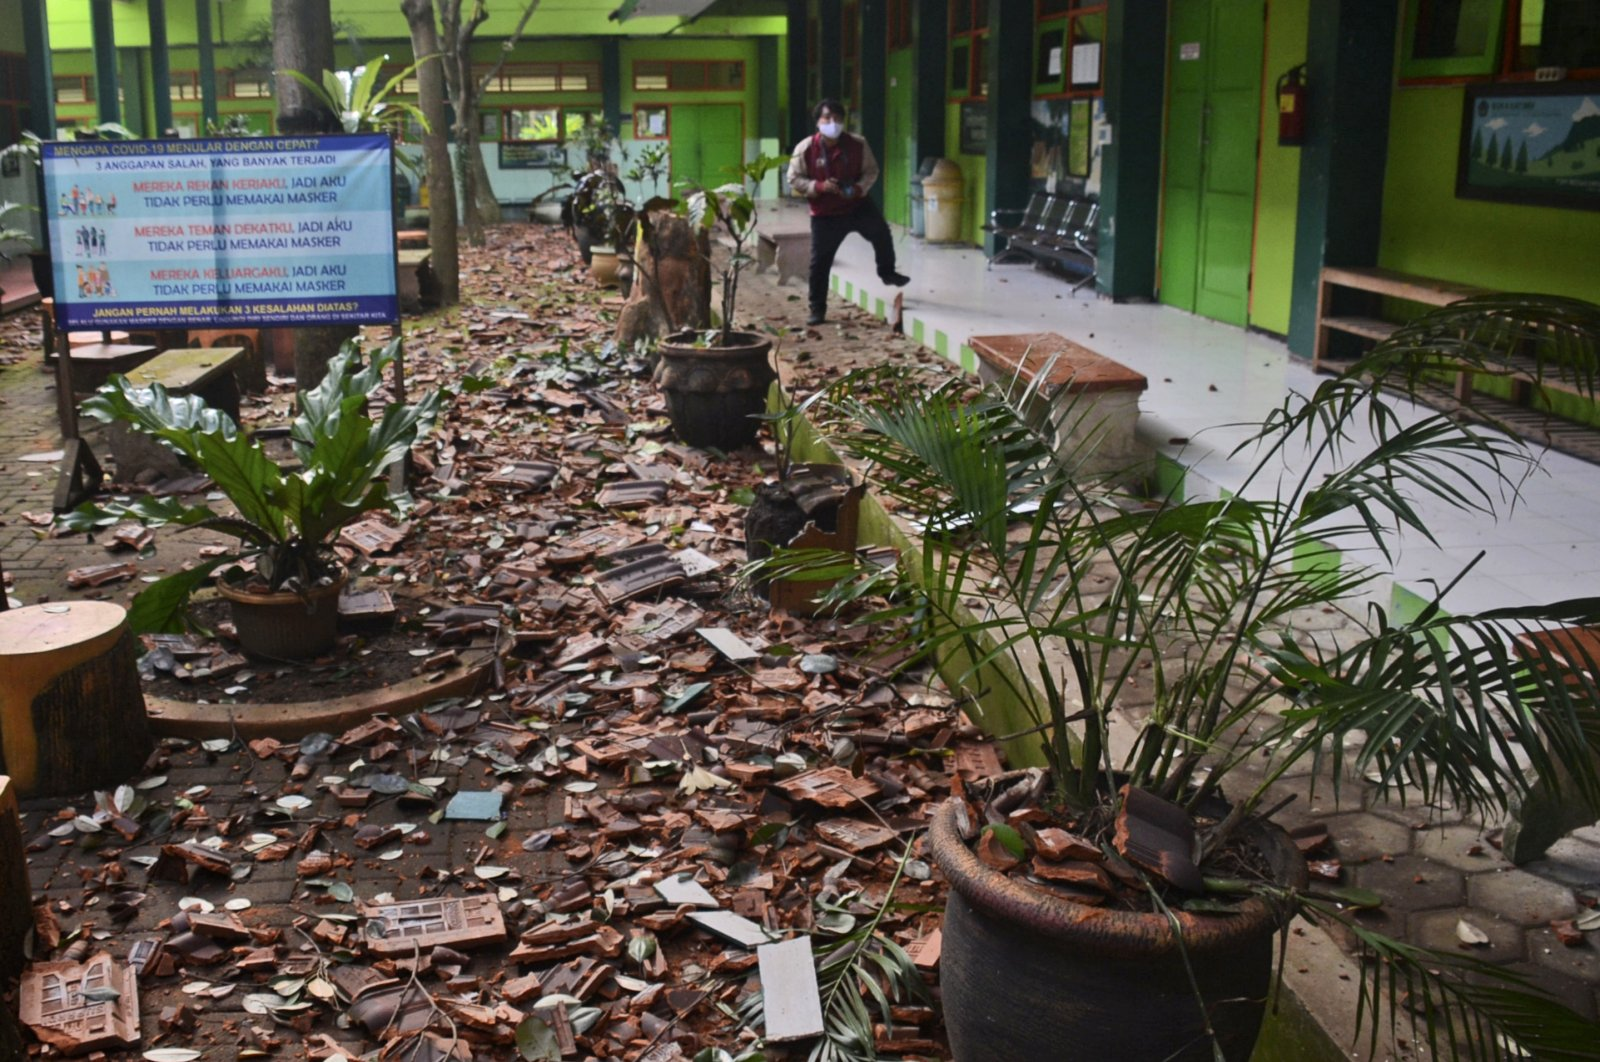 Pieces of roof tiles and other debris litter the ground at a school following an earthquake in Malang, East Java, Indonesia, Saturday, April 10, 2021. (AP Photo)